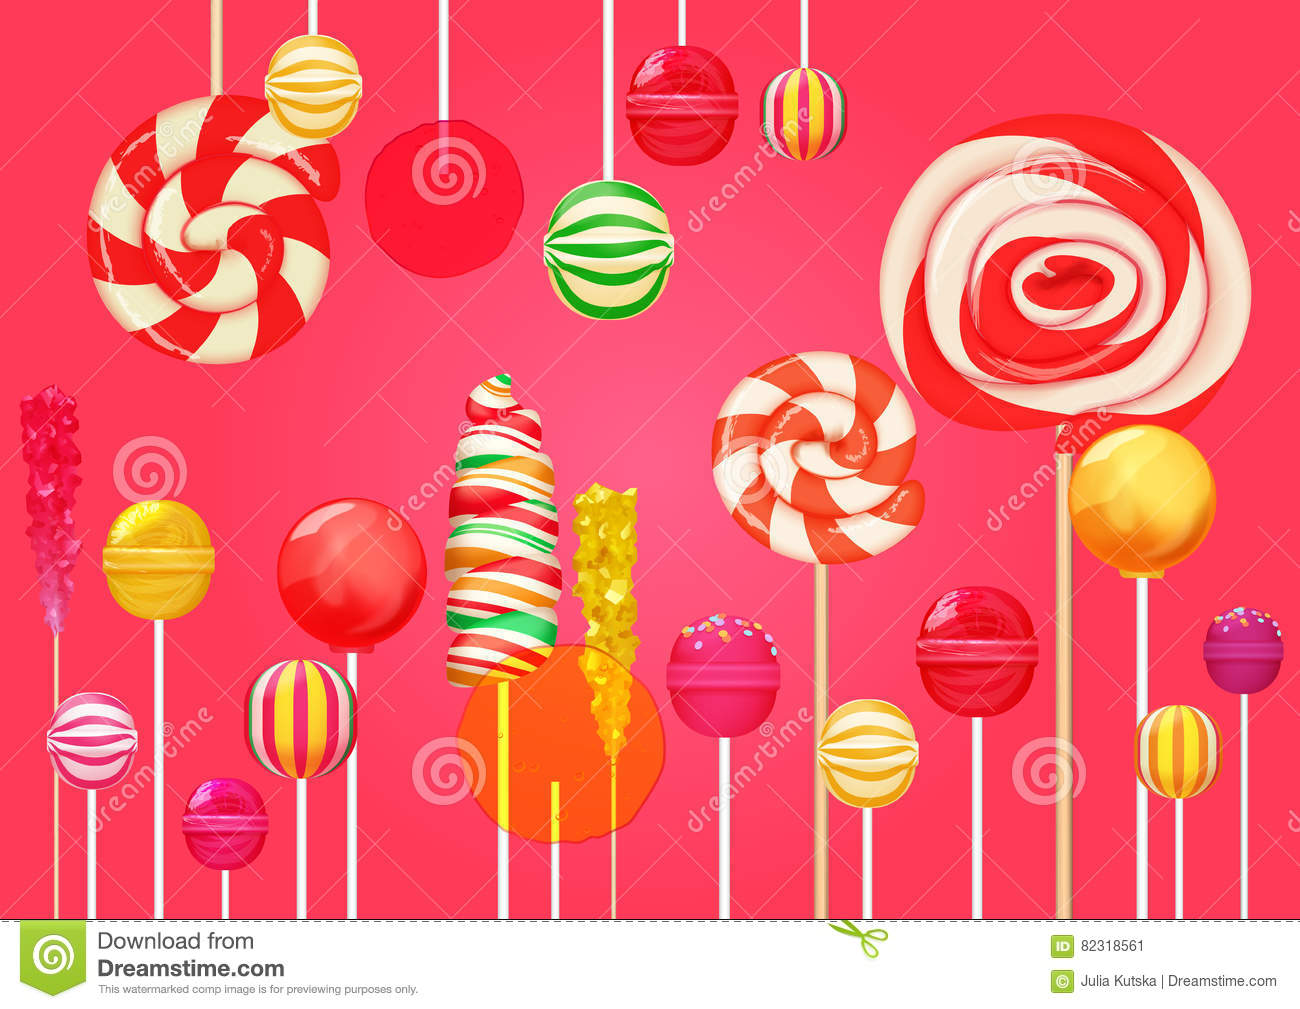 red pink sugar background with bright colorful lollipops